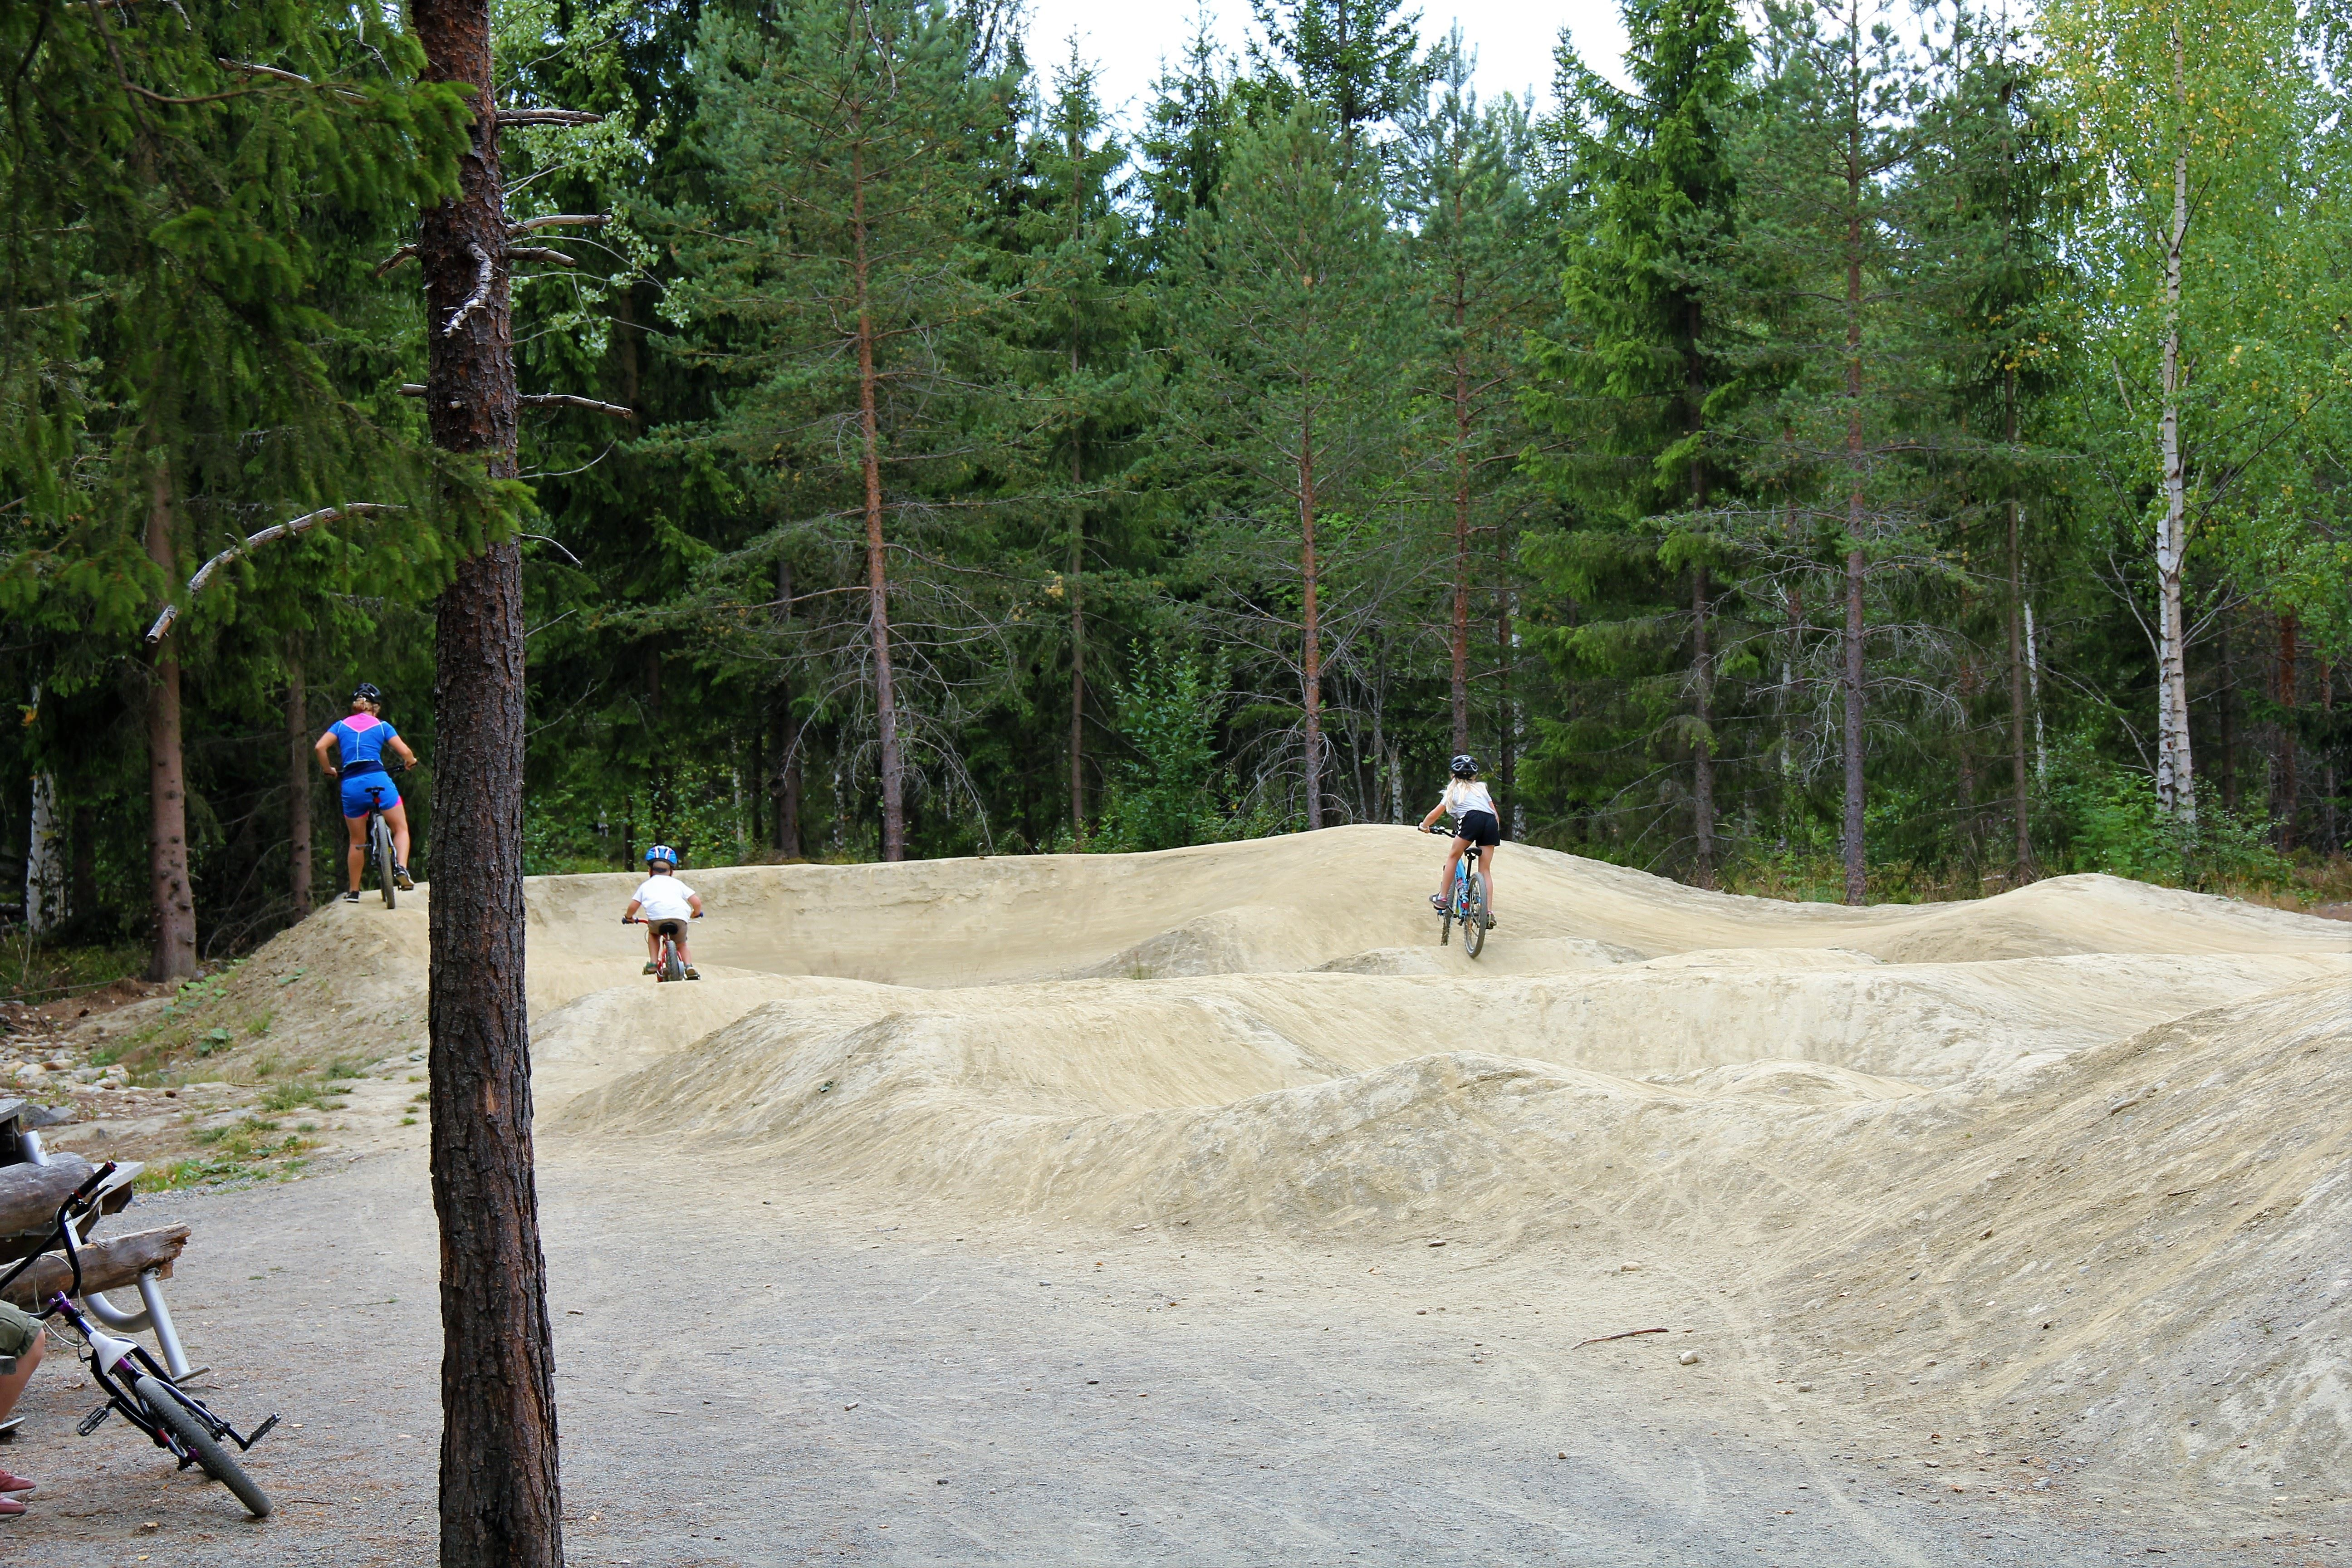 Pump track course